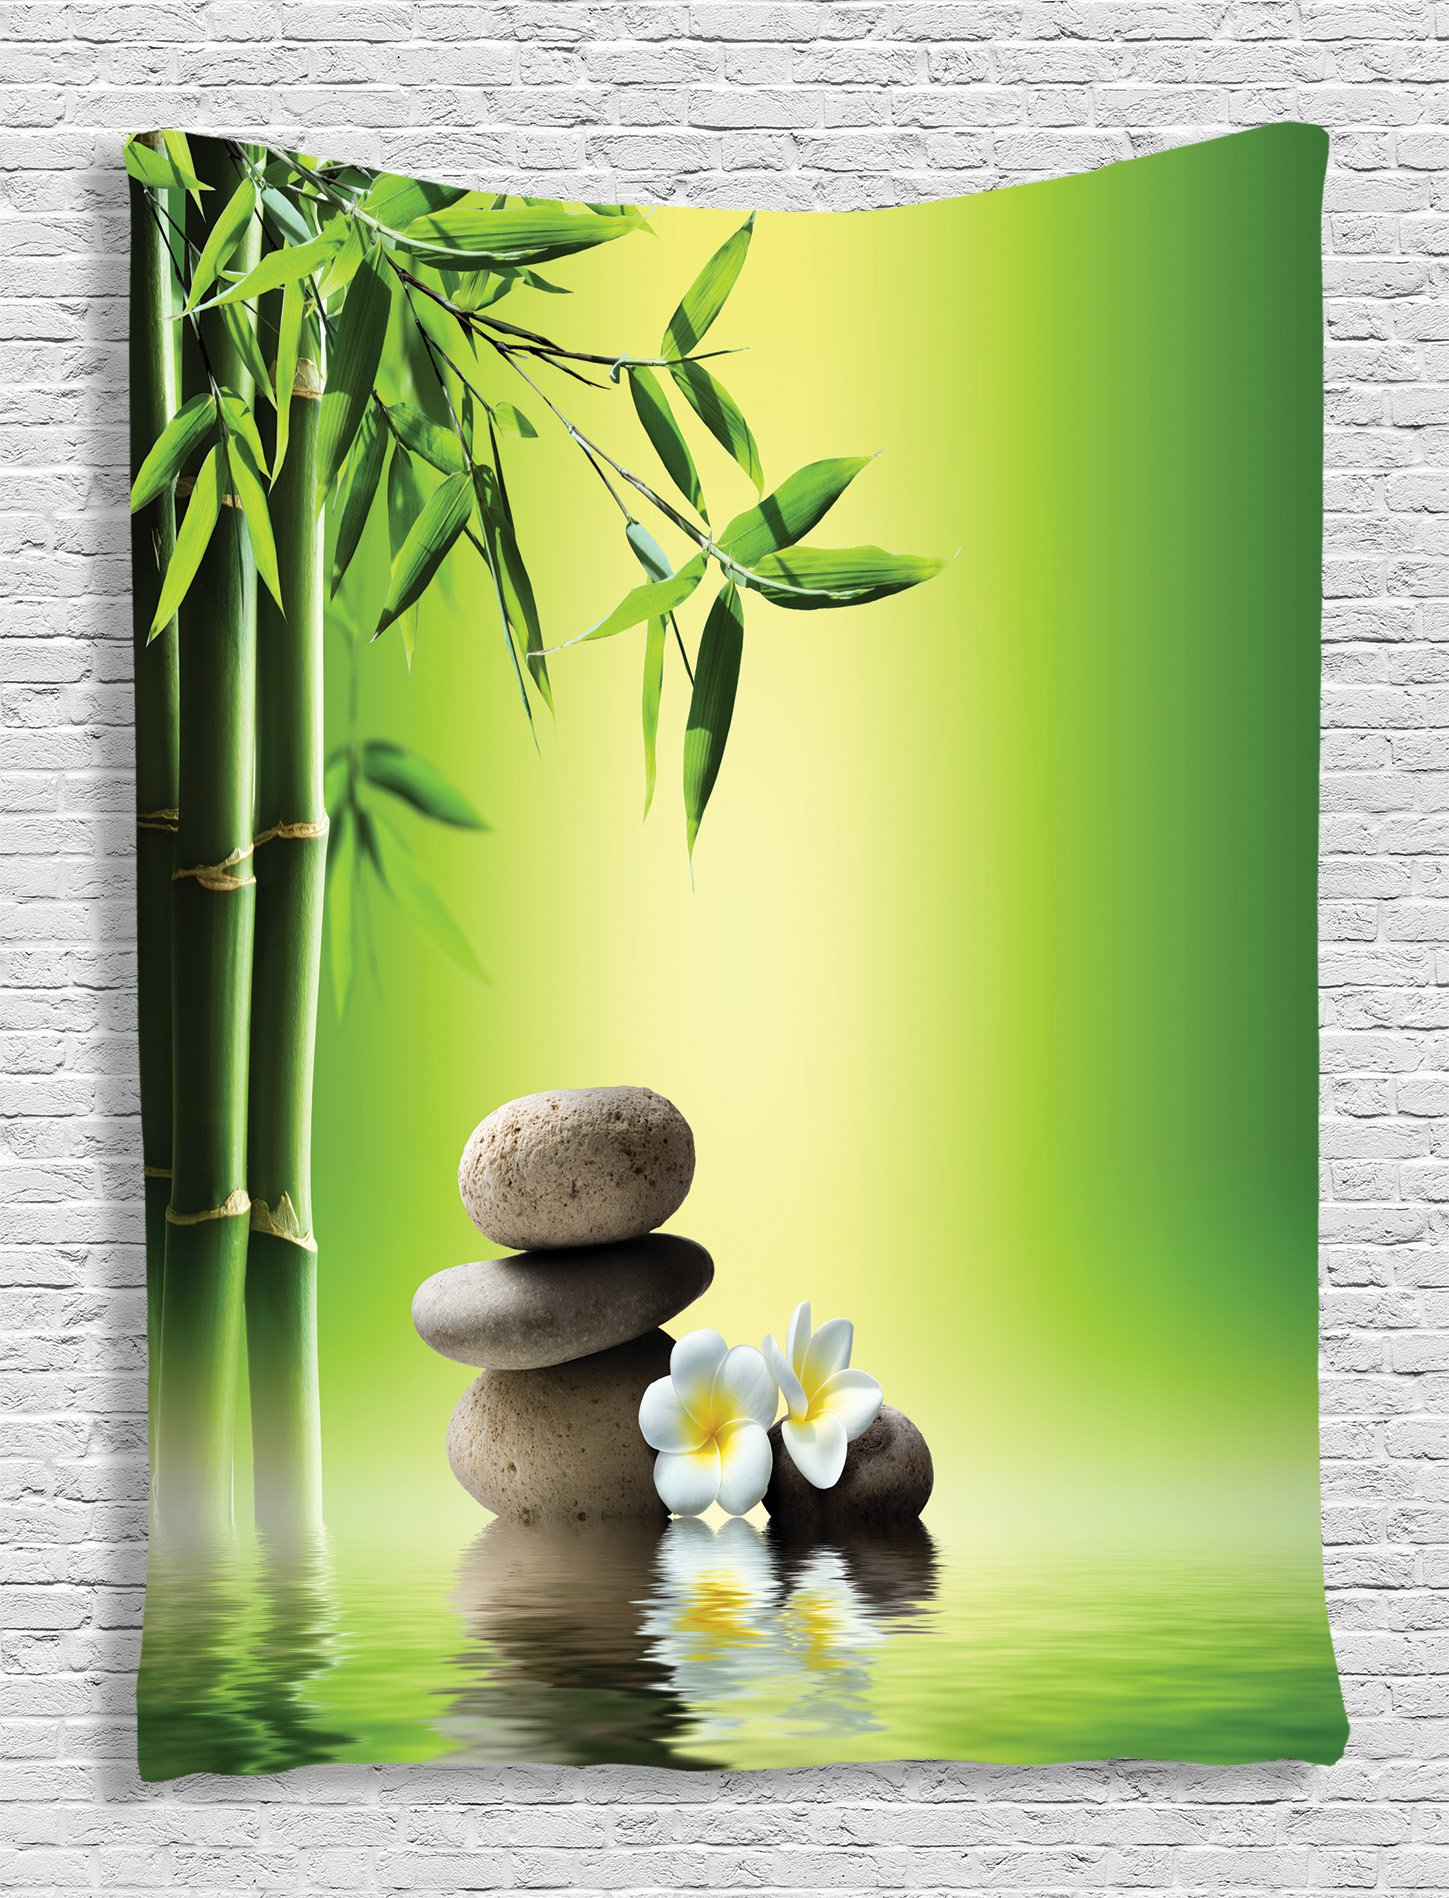 Ambesonne Bamboos Spa Decor Collection, Japanese Therapy and Relaxation Stones Frangipani Flowers Design, Bedroom Living Kids Girls Boys Room Dorm Accessories Wall Hanging Tapestry, Green Yellow